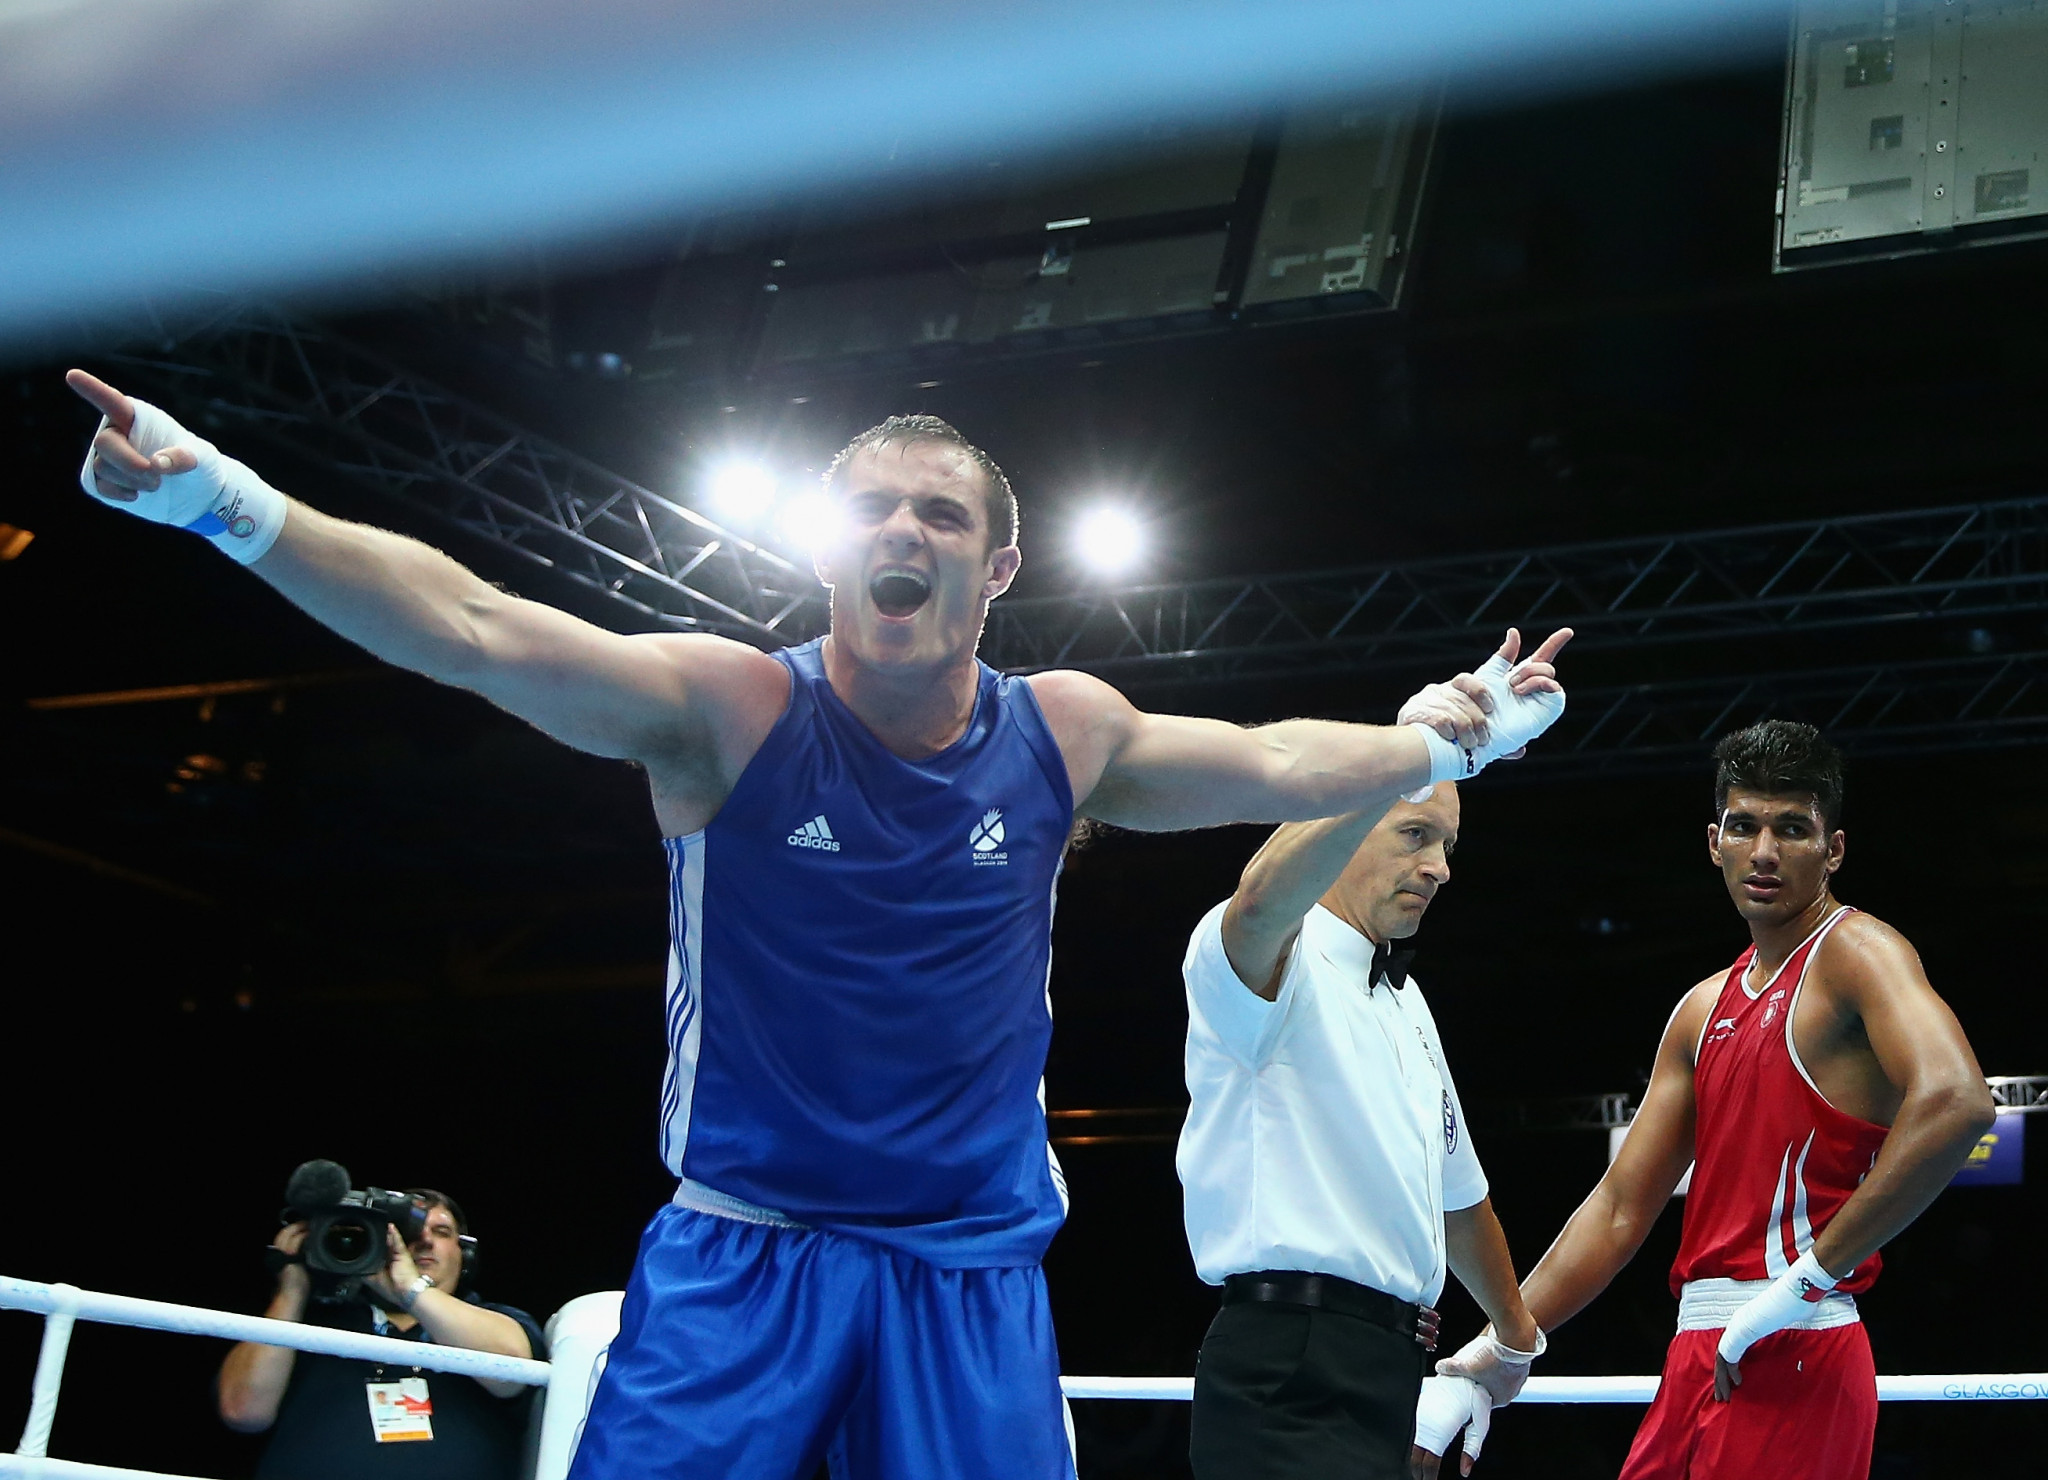 Commonwealth Games boxing bronze medallist Stephen Lavelle has been charged with assault following an altercation ©Getty Images